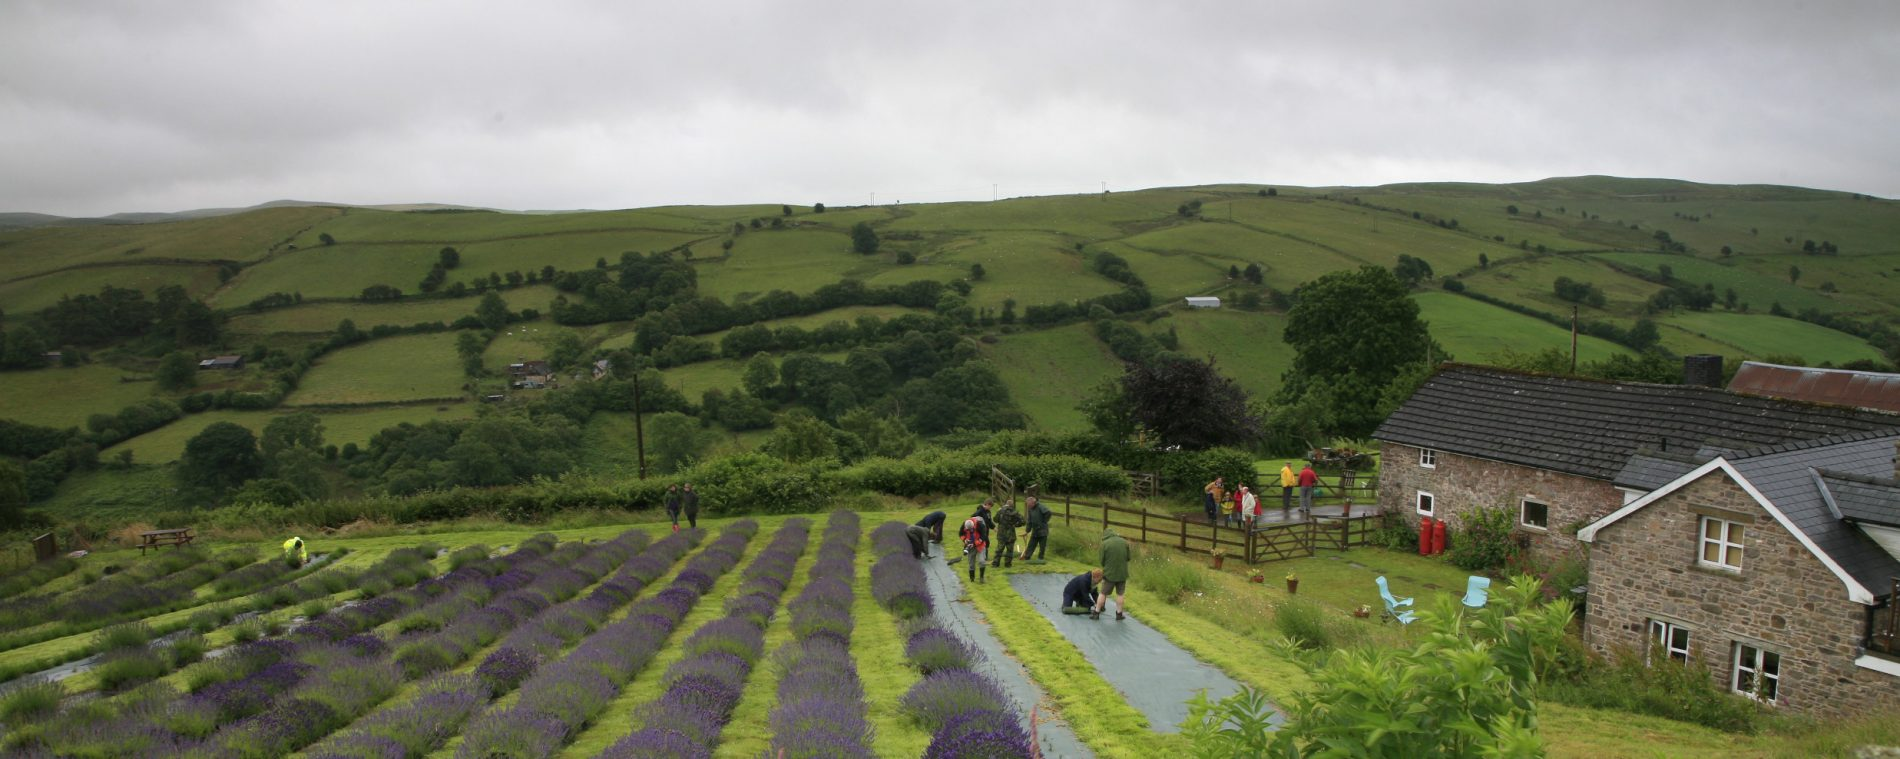 lavender farm wales, things to do in mid wales, nourishing skincare